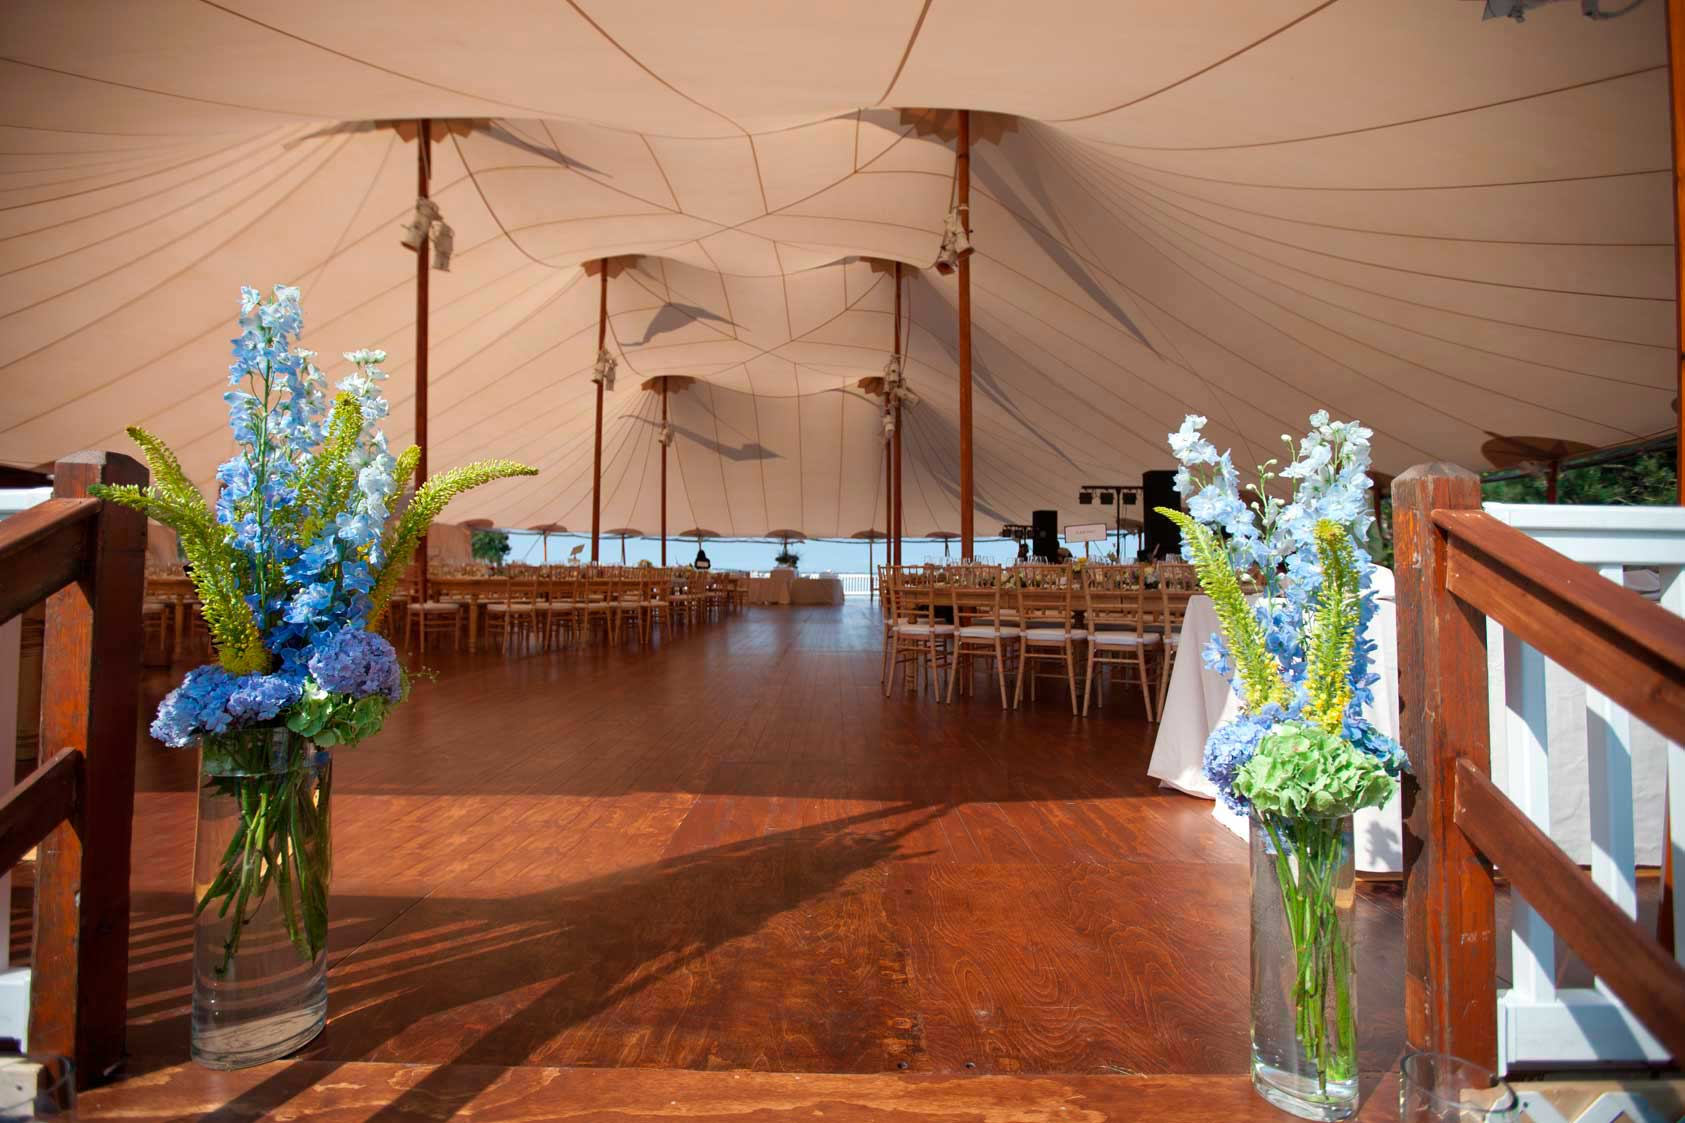 This striking tent is perched magnificently over the Atlantic Ocean on Prout's Neck, Maine.